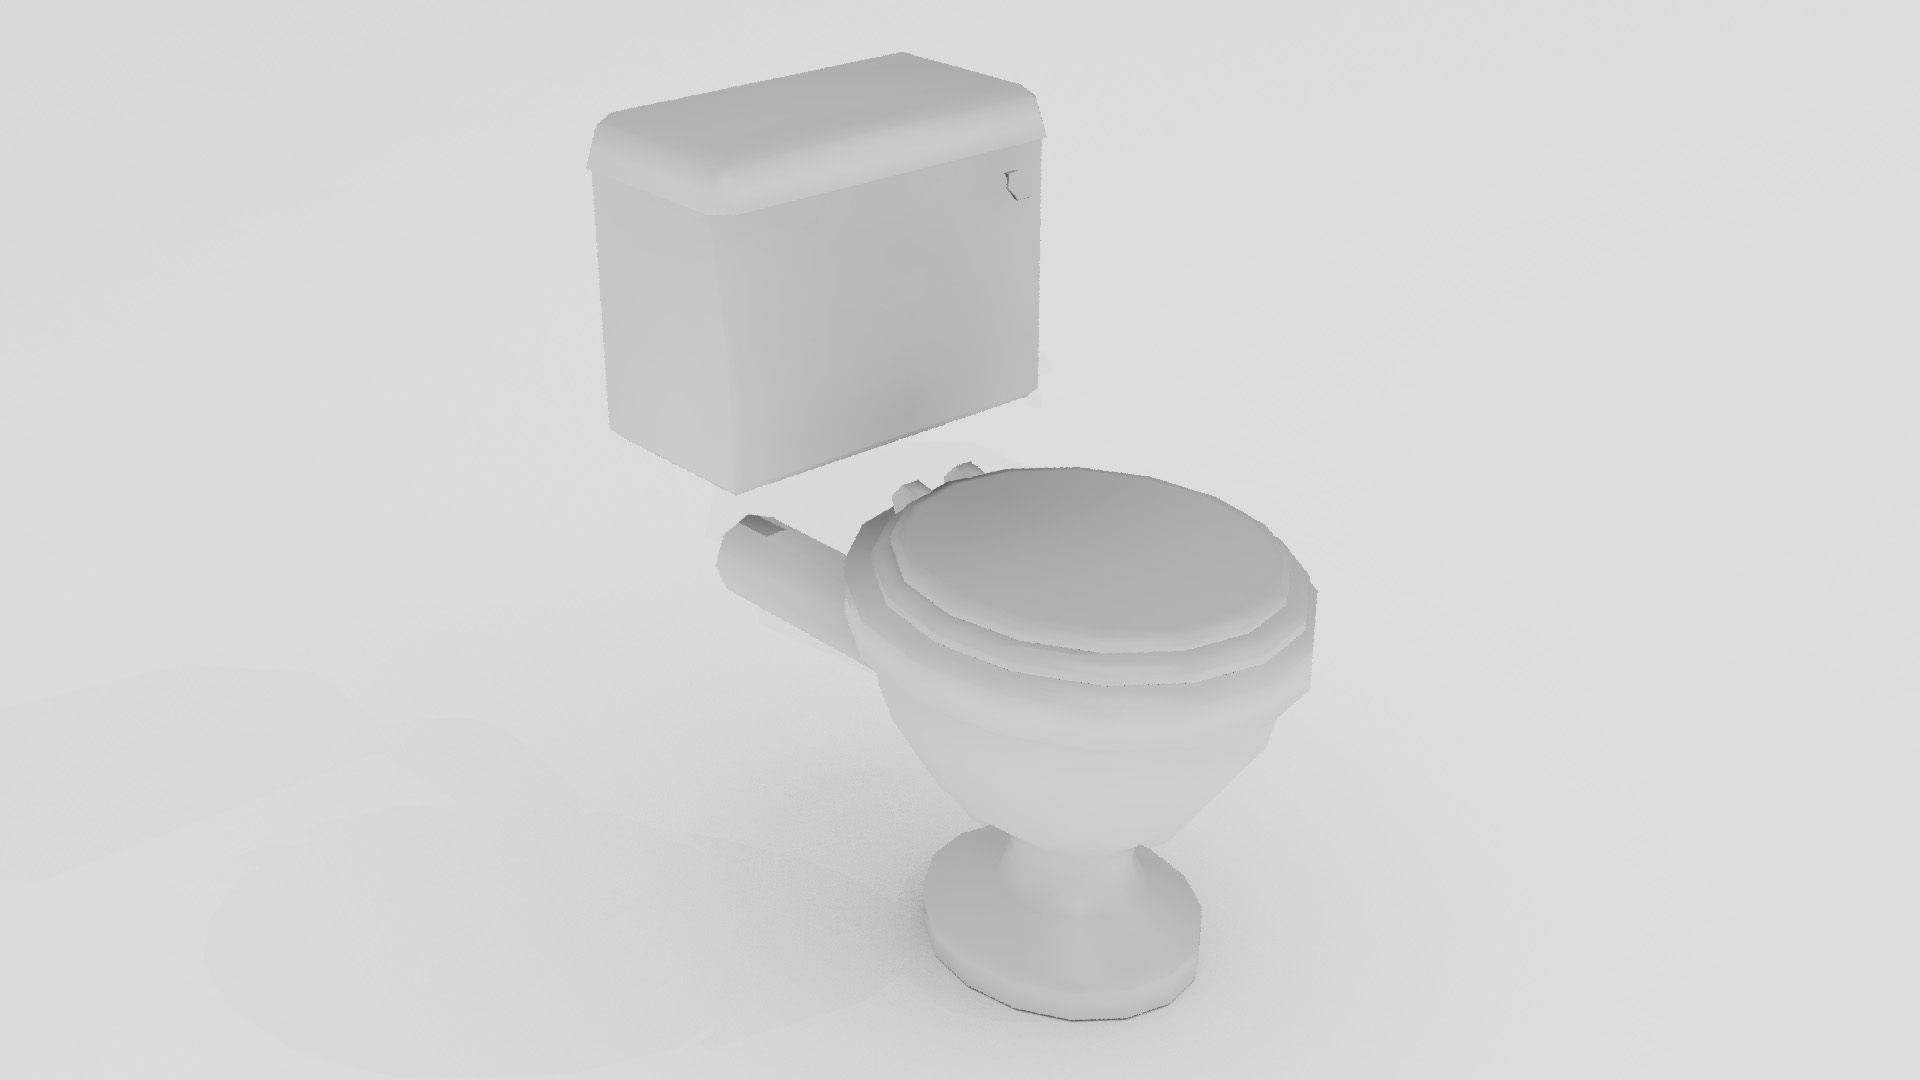 porcelain toilet 3d model 3ds max fbx blend dae obj 272153